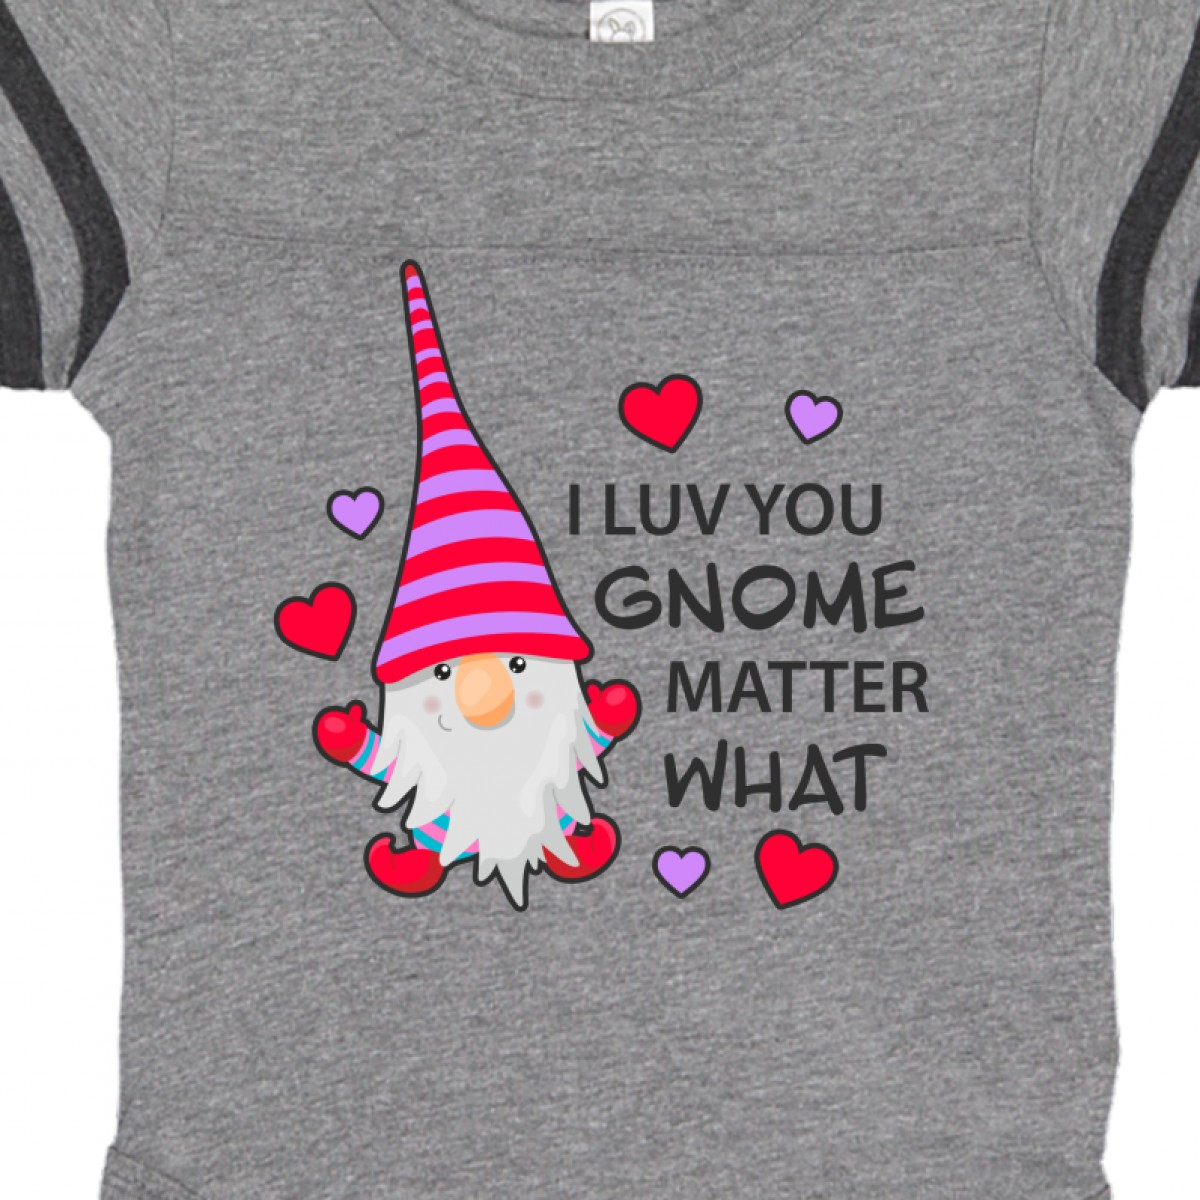 Inktastic-I-Luv-You-Gnome-Matter-What-With-Gnome-And-Hearts-Infant-Creeper-Love 縮圖 8